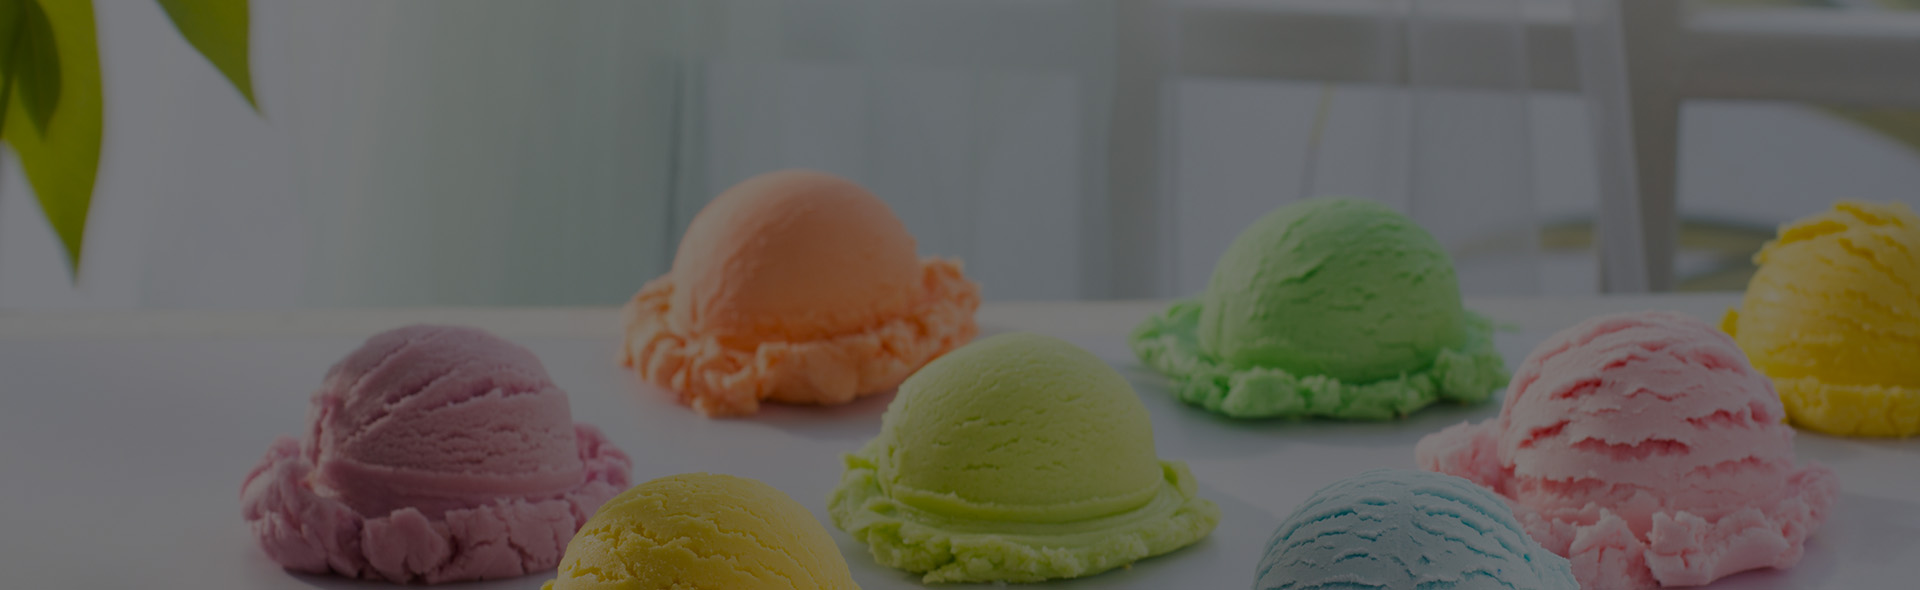 Multiple Flavors of Ice Cream